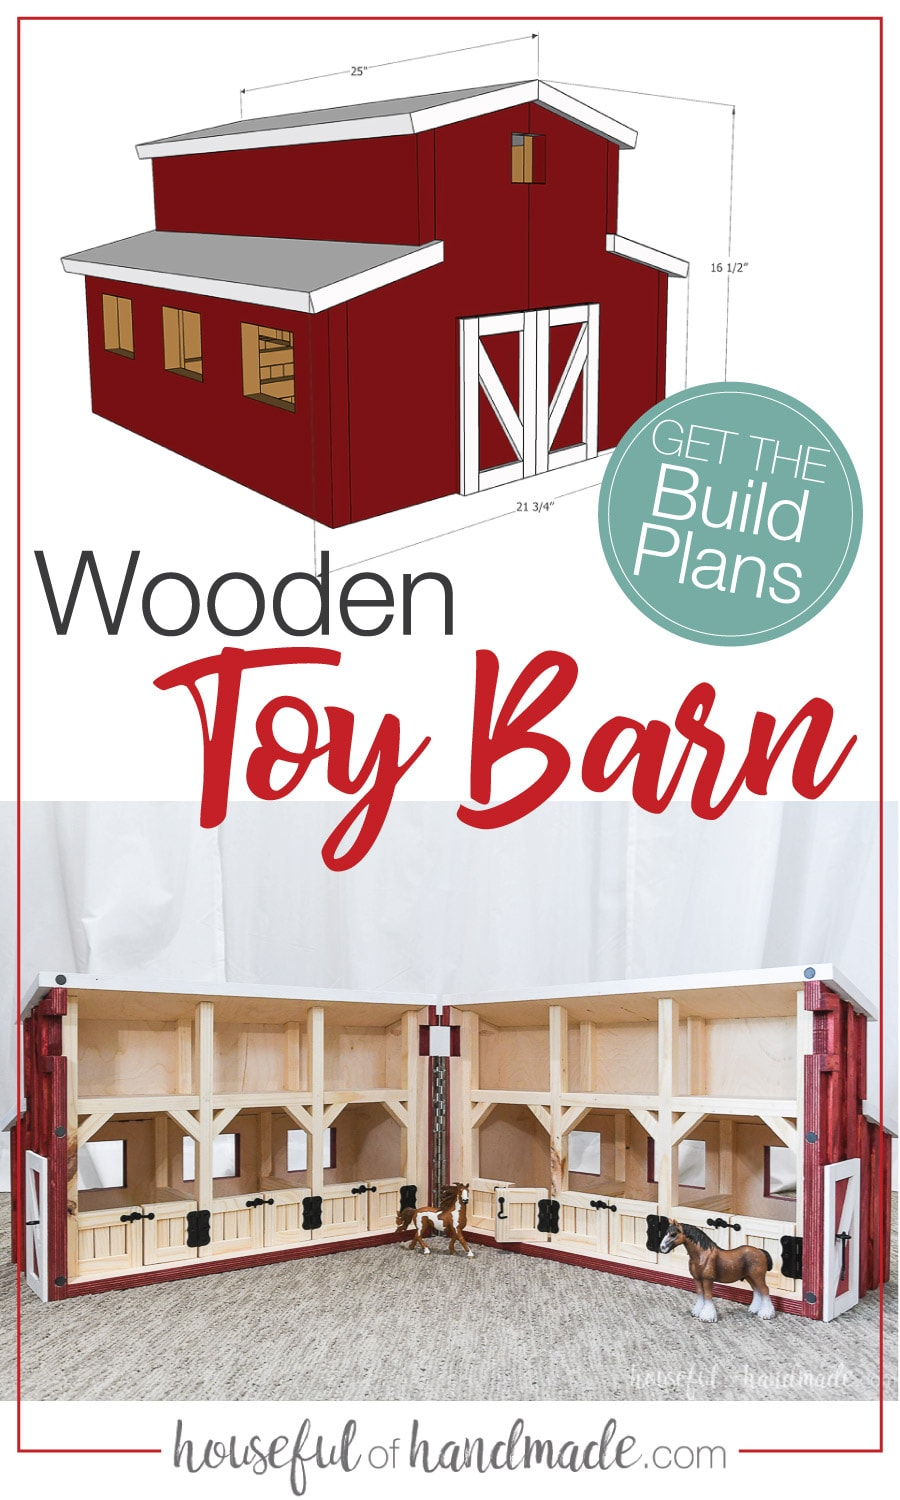 Sketchup drawing of the wooden toy barn plans and picture of the finished build opened up.